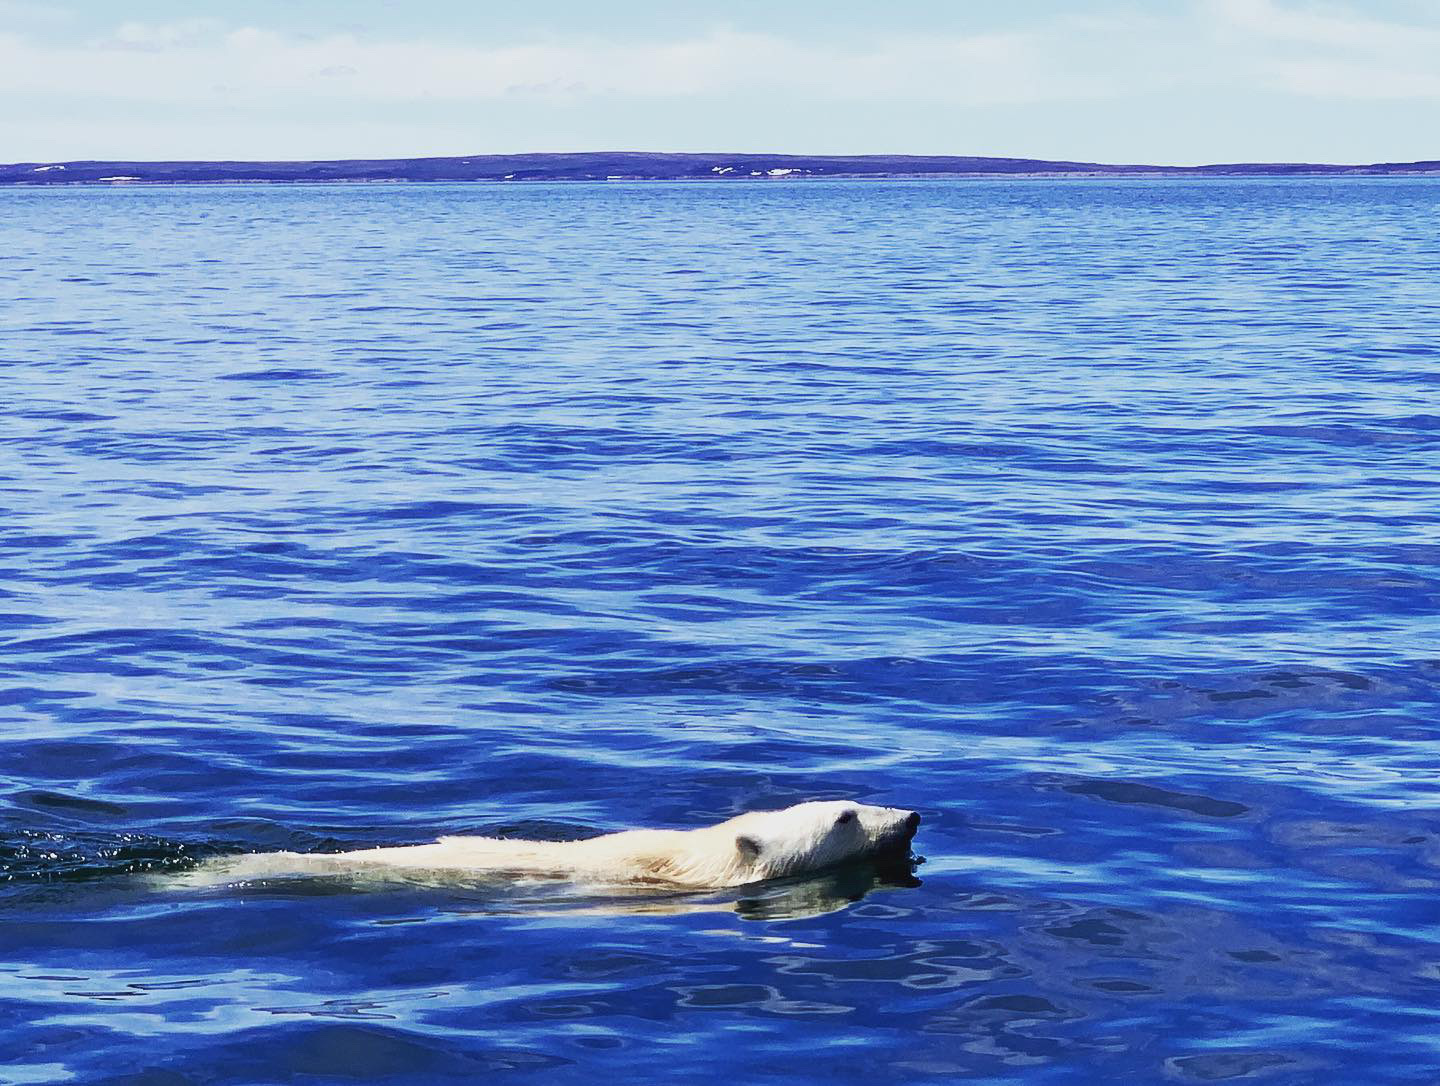 """Malaya Qaunirq Chapman of Kuujjuaq spotted this polar bear during a July 1 boating trip near an island in Ungava Bay called Aluqpaluk. """"We first saw the polar bear on the island, then it went for a swim to give us space,"""" she writes. """"We kept our distance so no disturbance was made."""" (Photo by Malaya Qaunirq Chapman)"""